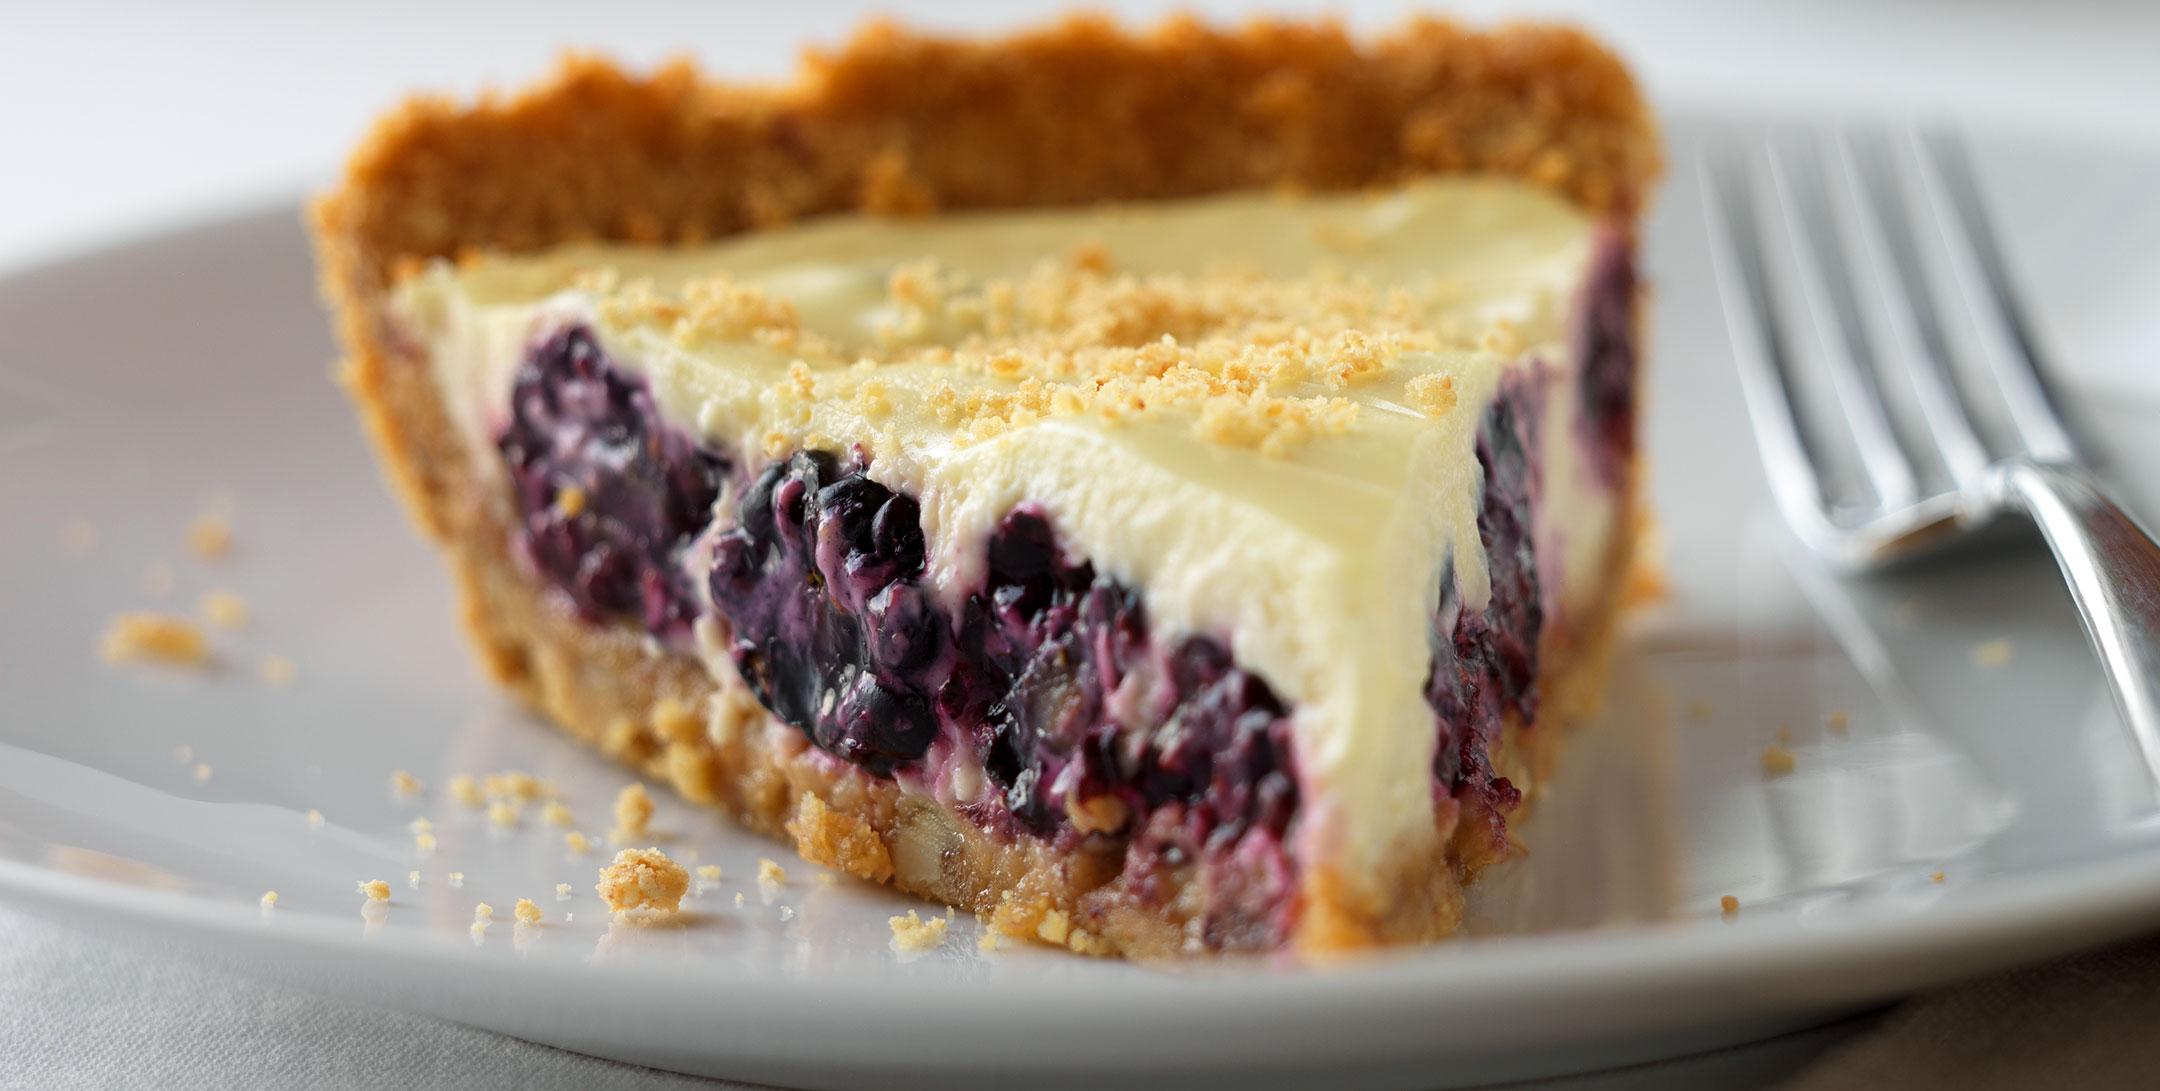 Blackberry Yogurt Pie